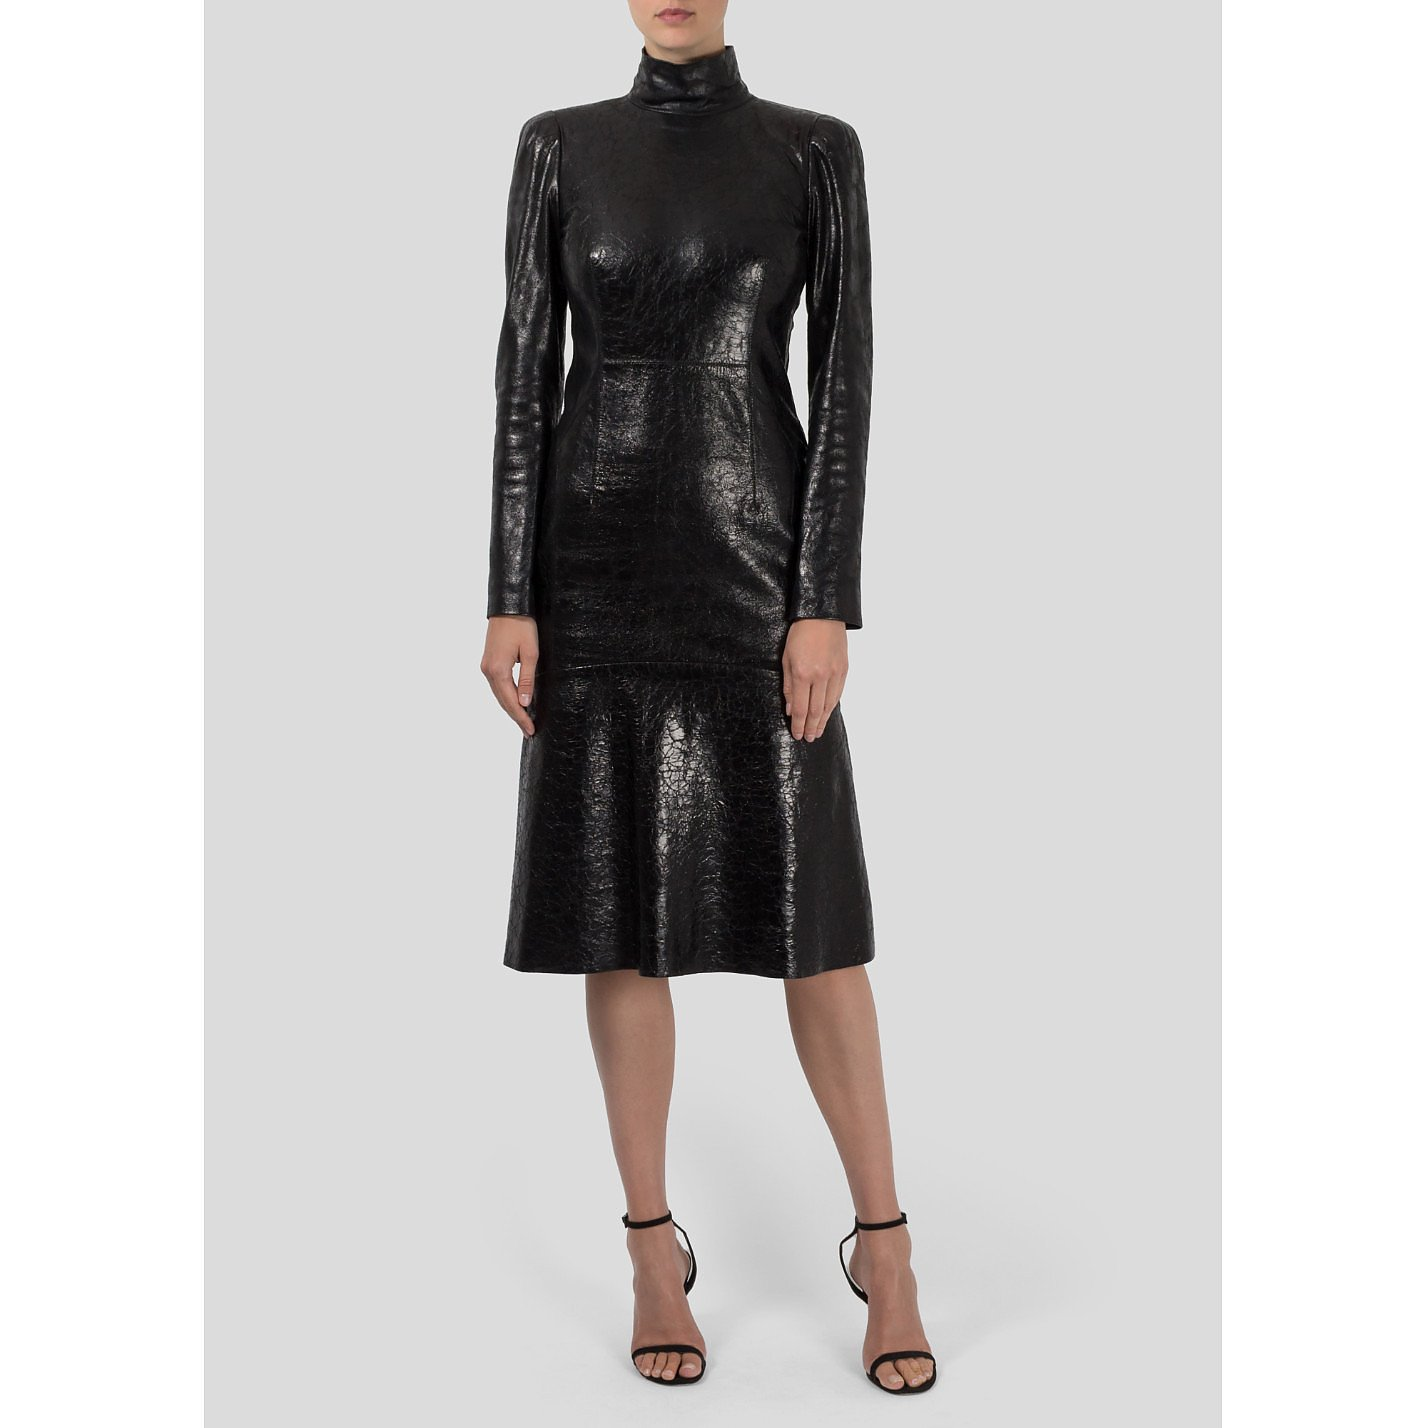 Gucci Leather Polo Neck Dress